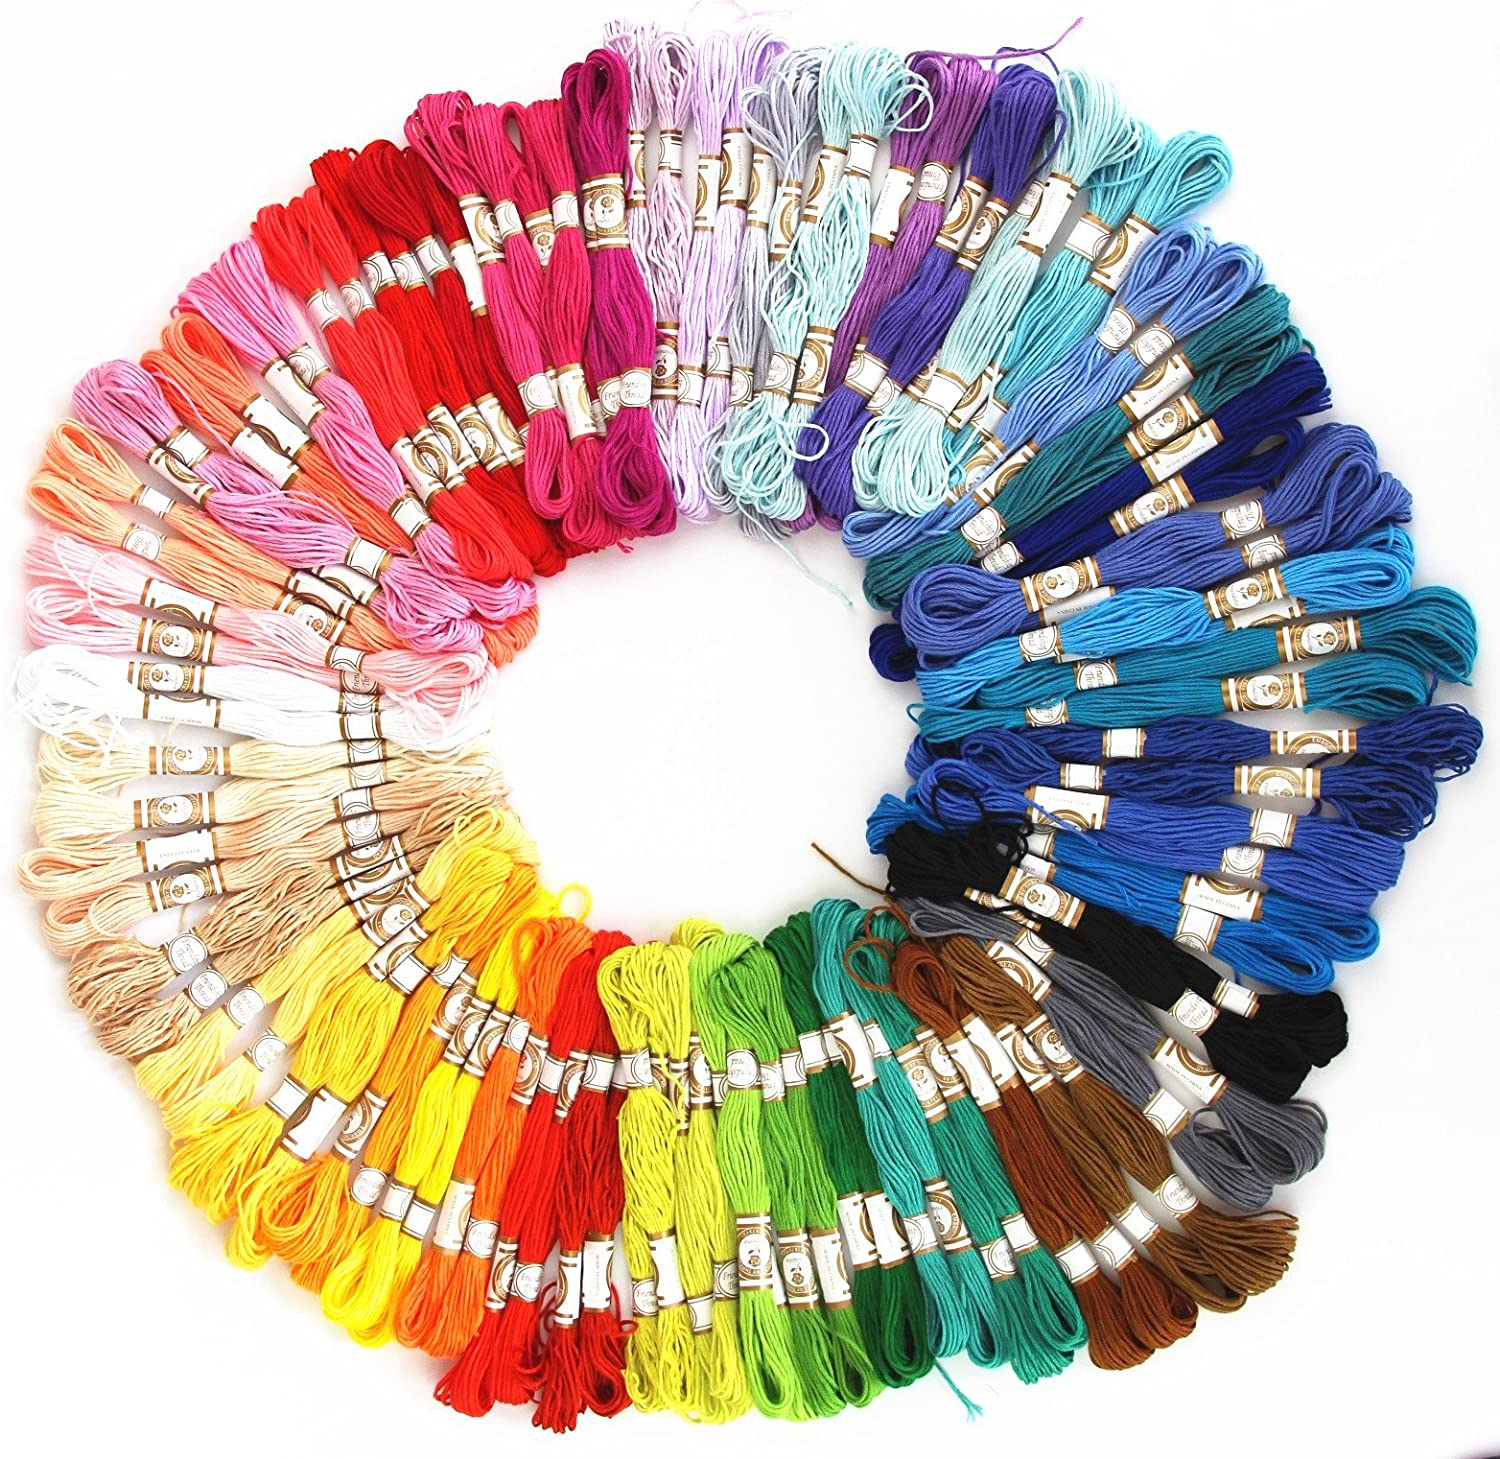 RayLineDo Embroidery Thread 100 PCS Deal Skeins Stranded Rare Embroid Popular products